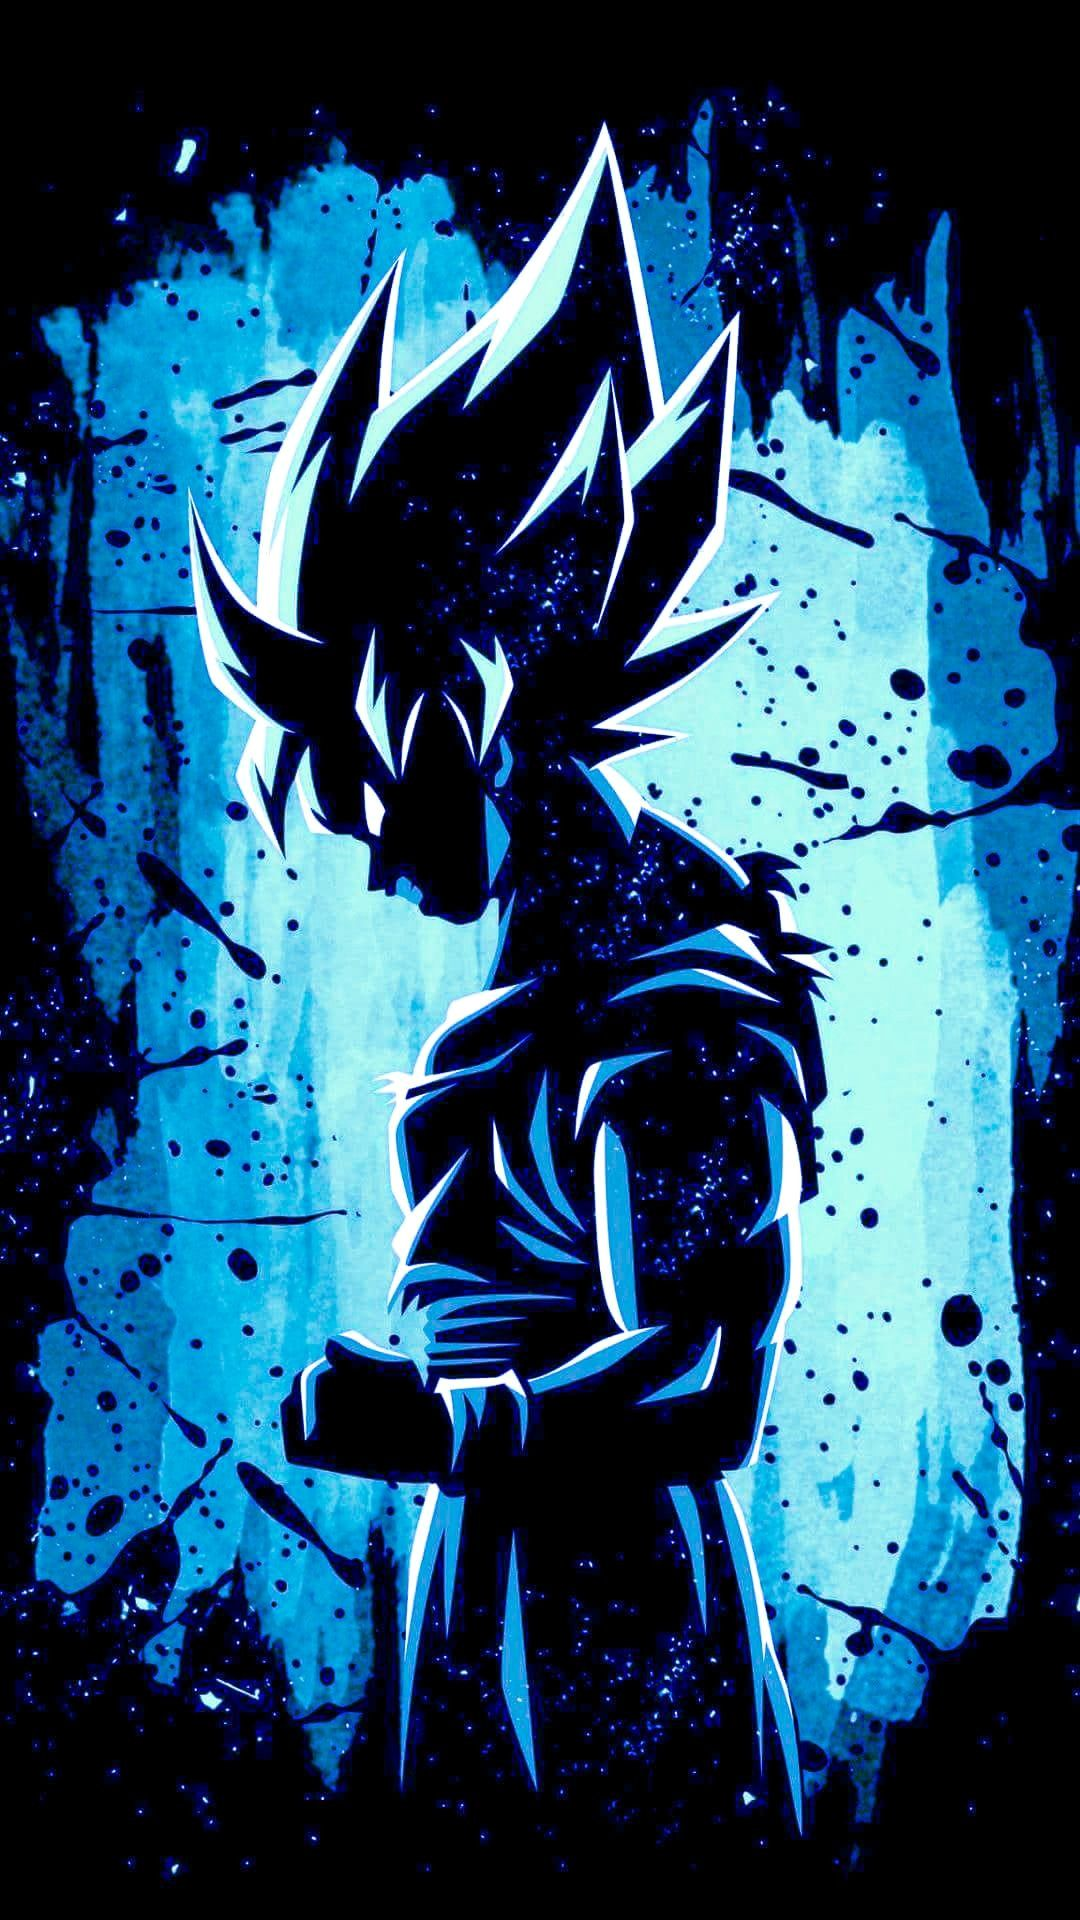 Inspirational Goku Live Wallpaper Iphone 7 Wall Black Dragon Ball Wallpapers Dragon Ball Super Wallpapers Dragon Ball Art